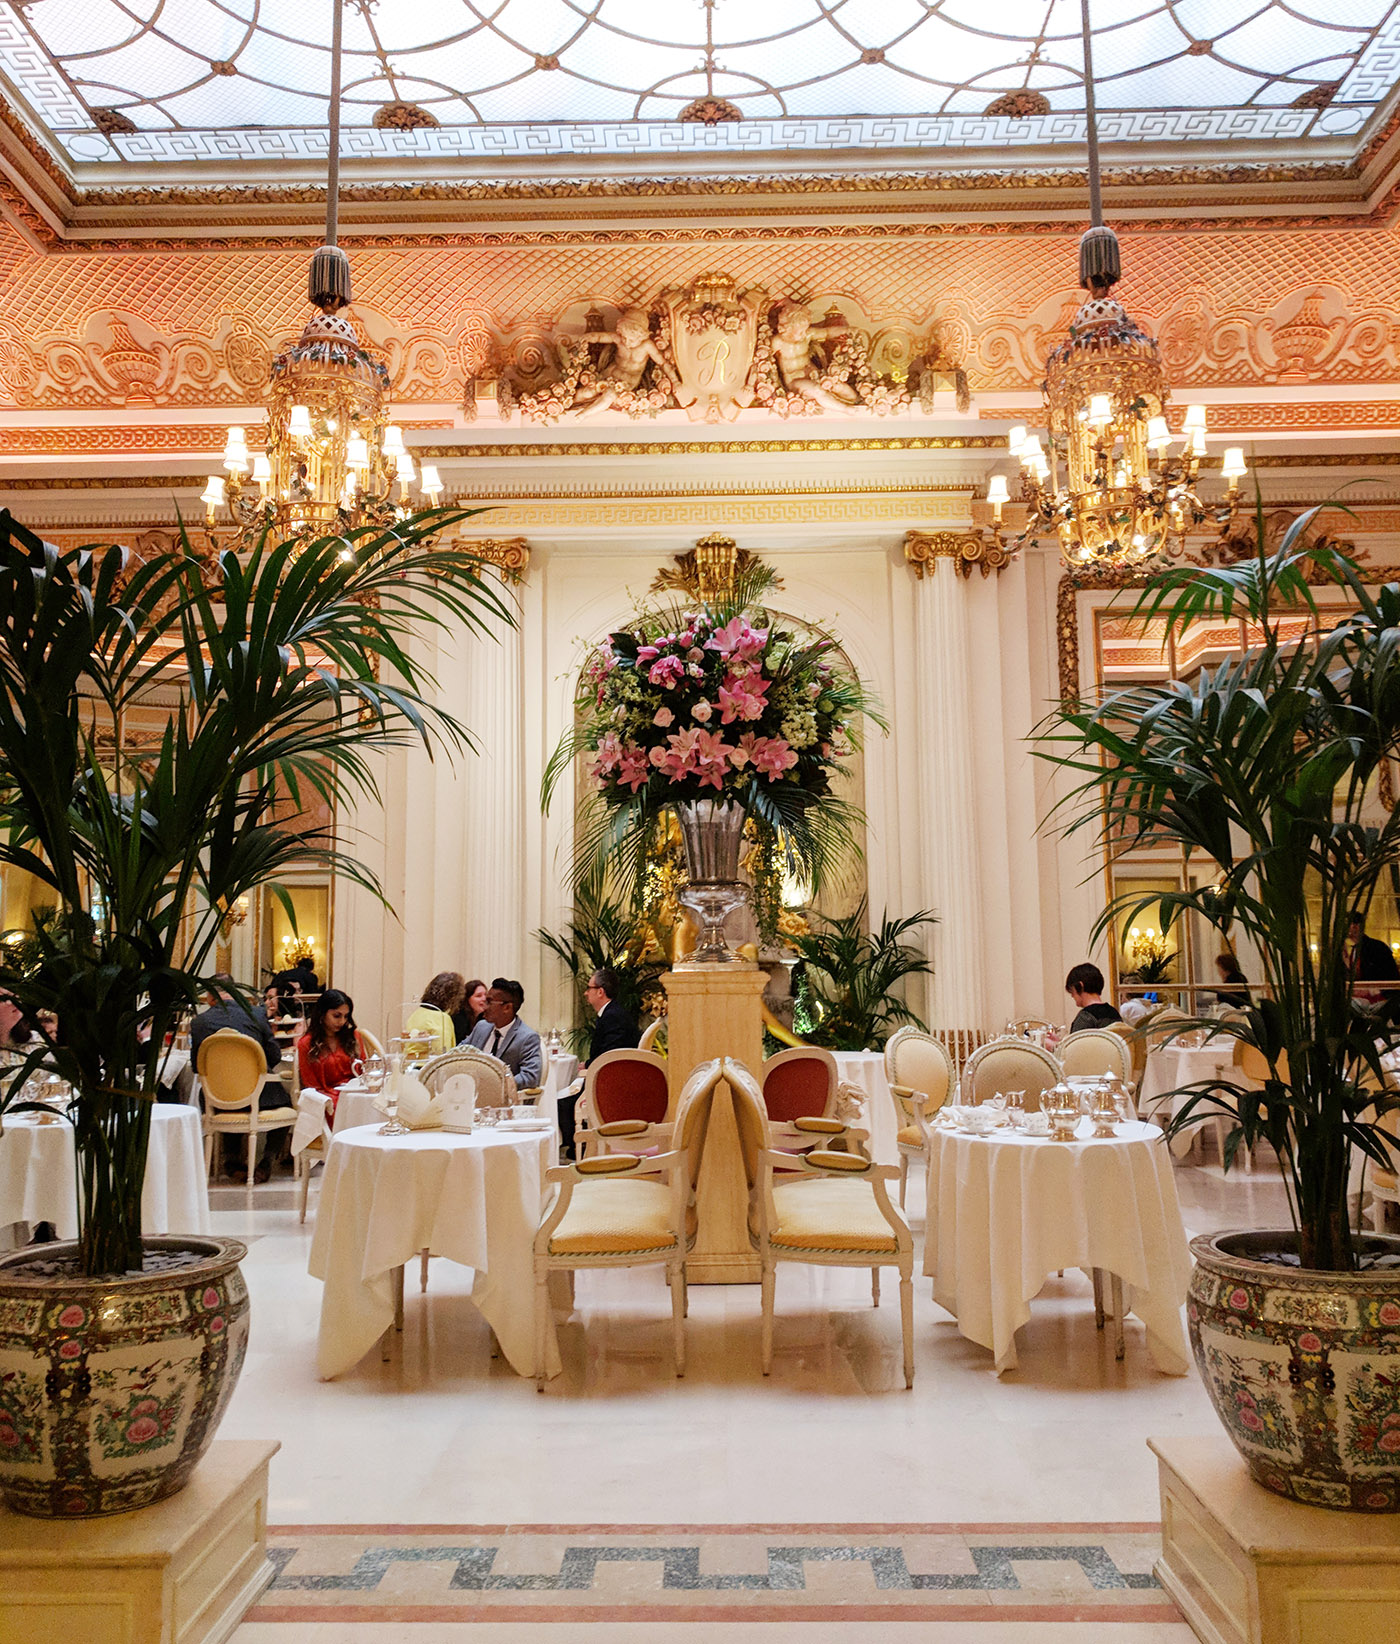 my full review of afternoon tea at The Ritz